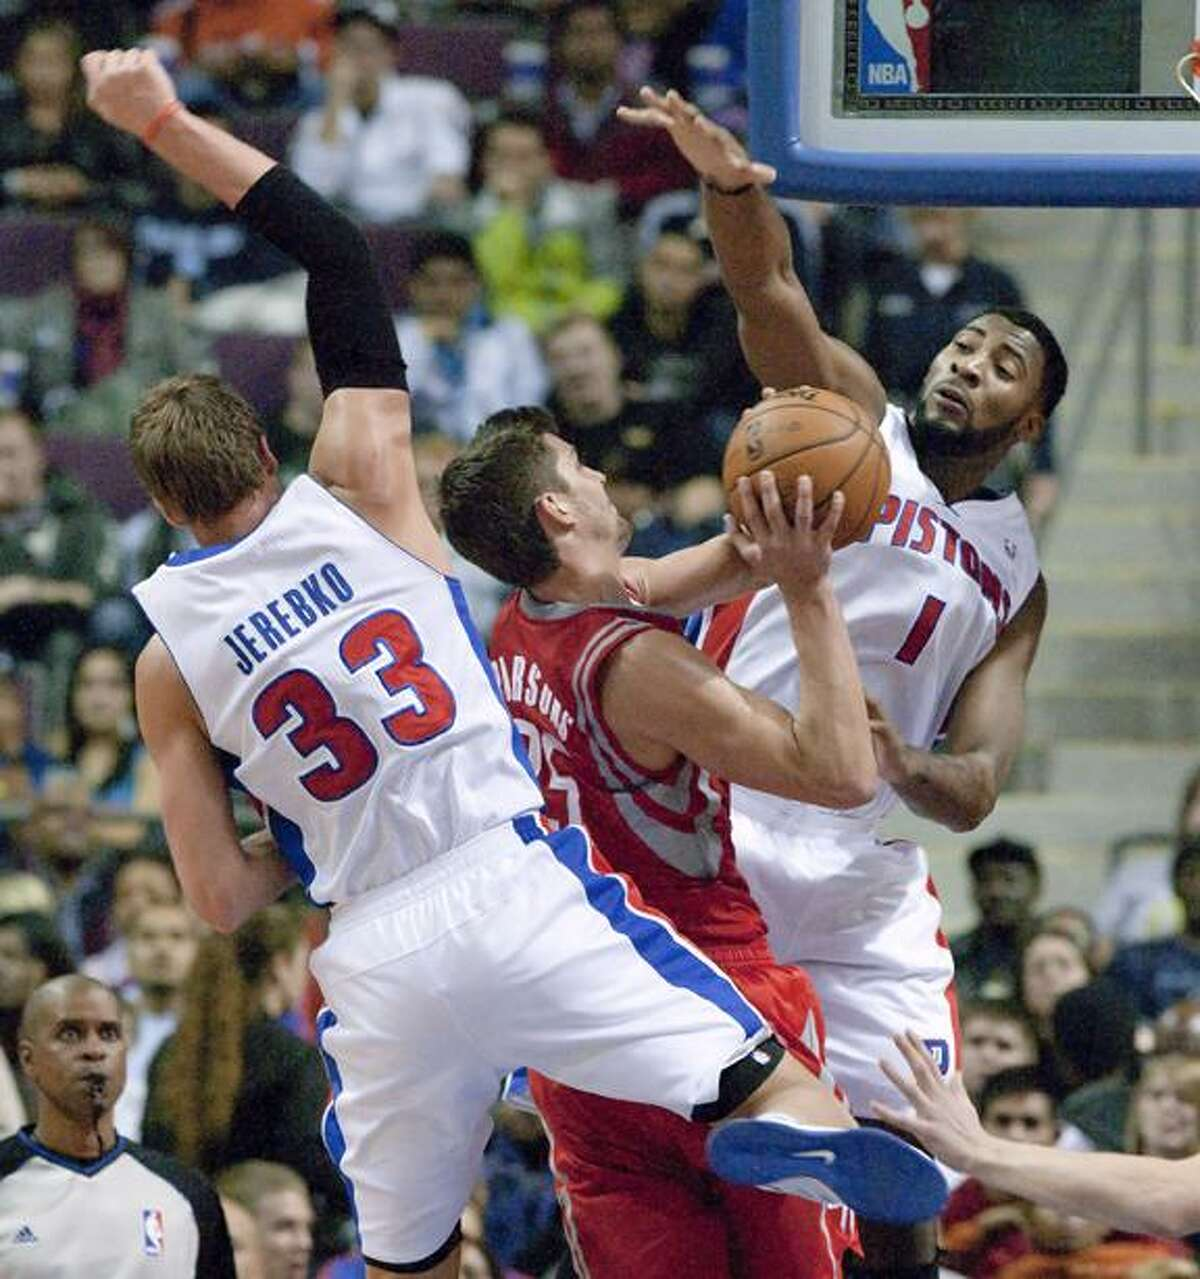 Detroit Pistons forwards Jonas Jerebko (33) and Andre Drummond (1) put pressure on Houston Rockets forward Chandler Parsons as he goes to the basket in the fourth quarter of an NBA basketball game Wednesday, Oct. 31, 2012, in Detroit. The Rockets defeated the Pistons 105-96. (AP Photo/Duane Burleson